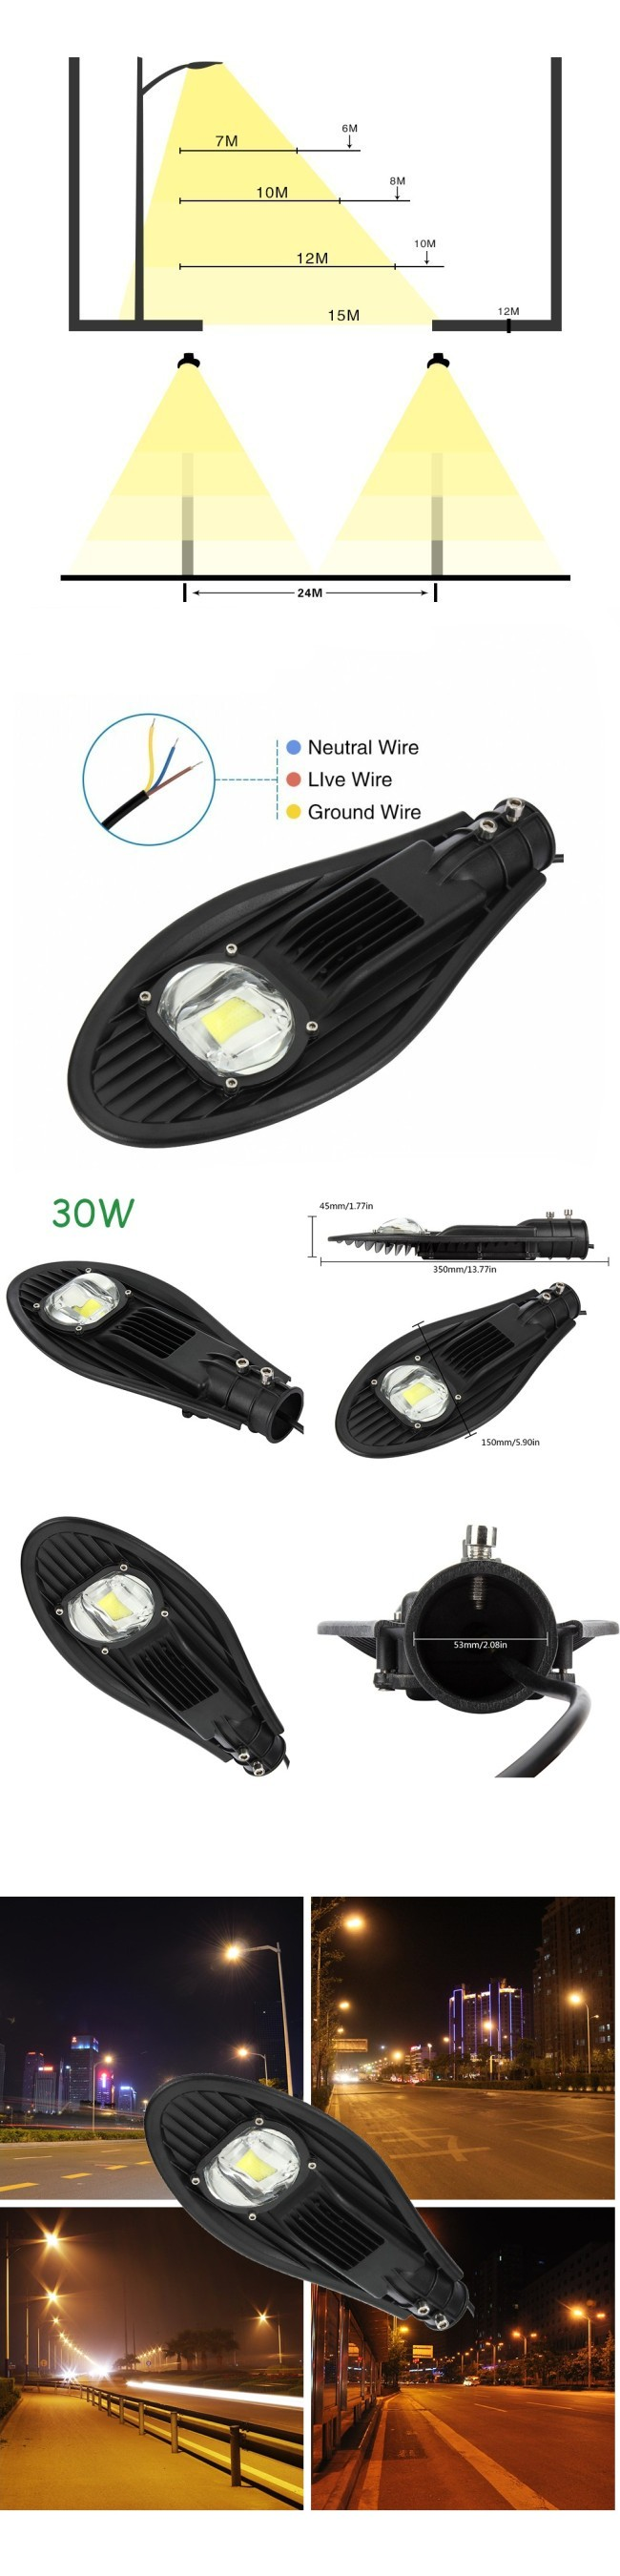 Outdoor Highway 50W COB LED Replacement Streetlight LED Street Light Housing